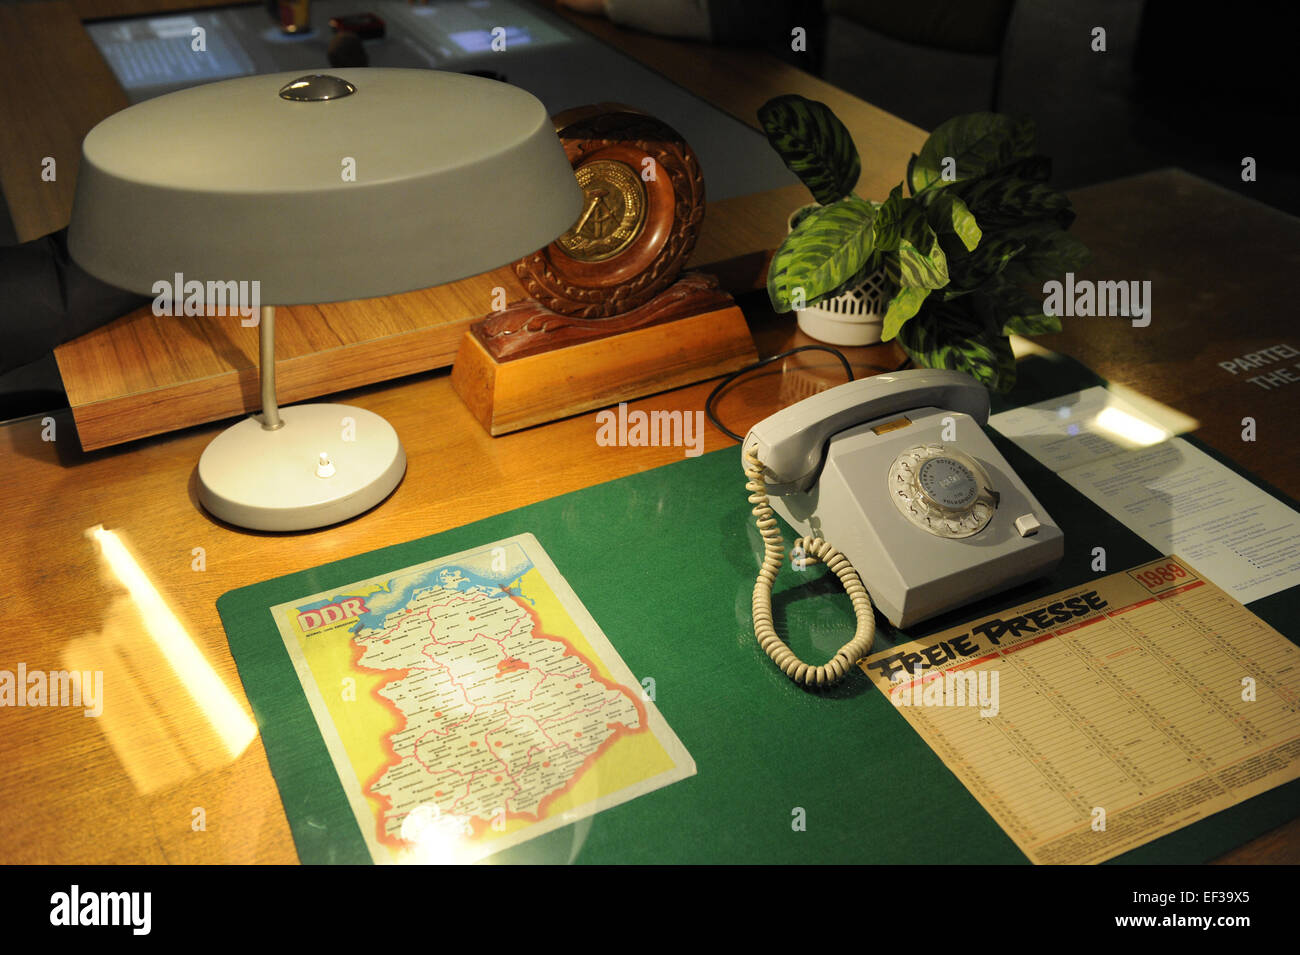 German Democratic Republic. Reproduction of an official work table. DDR Museum. Berlin. Germany. - Stock Image